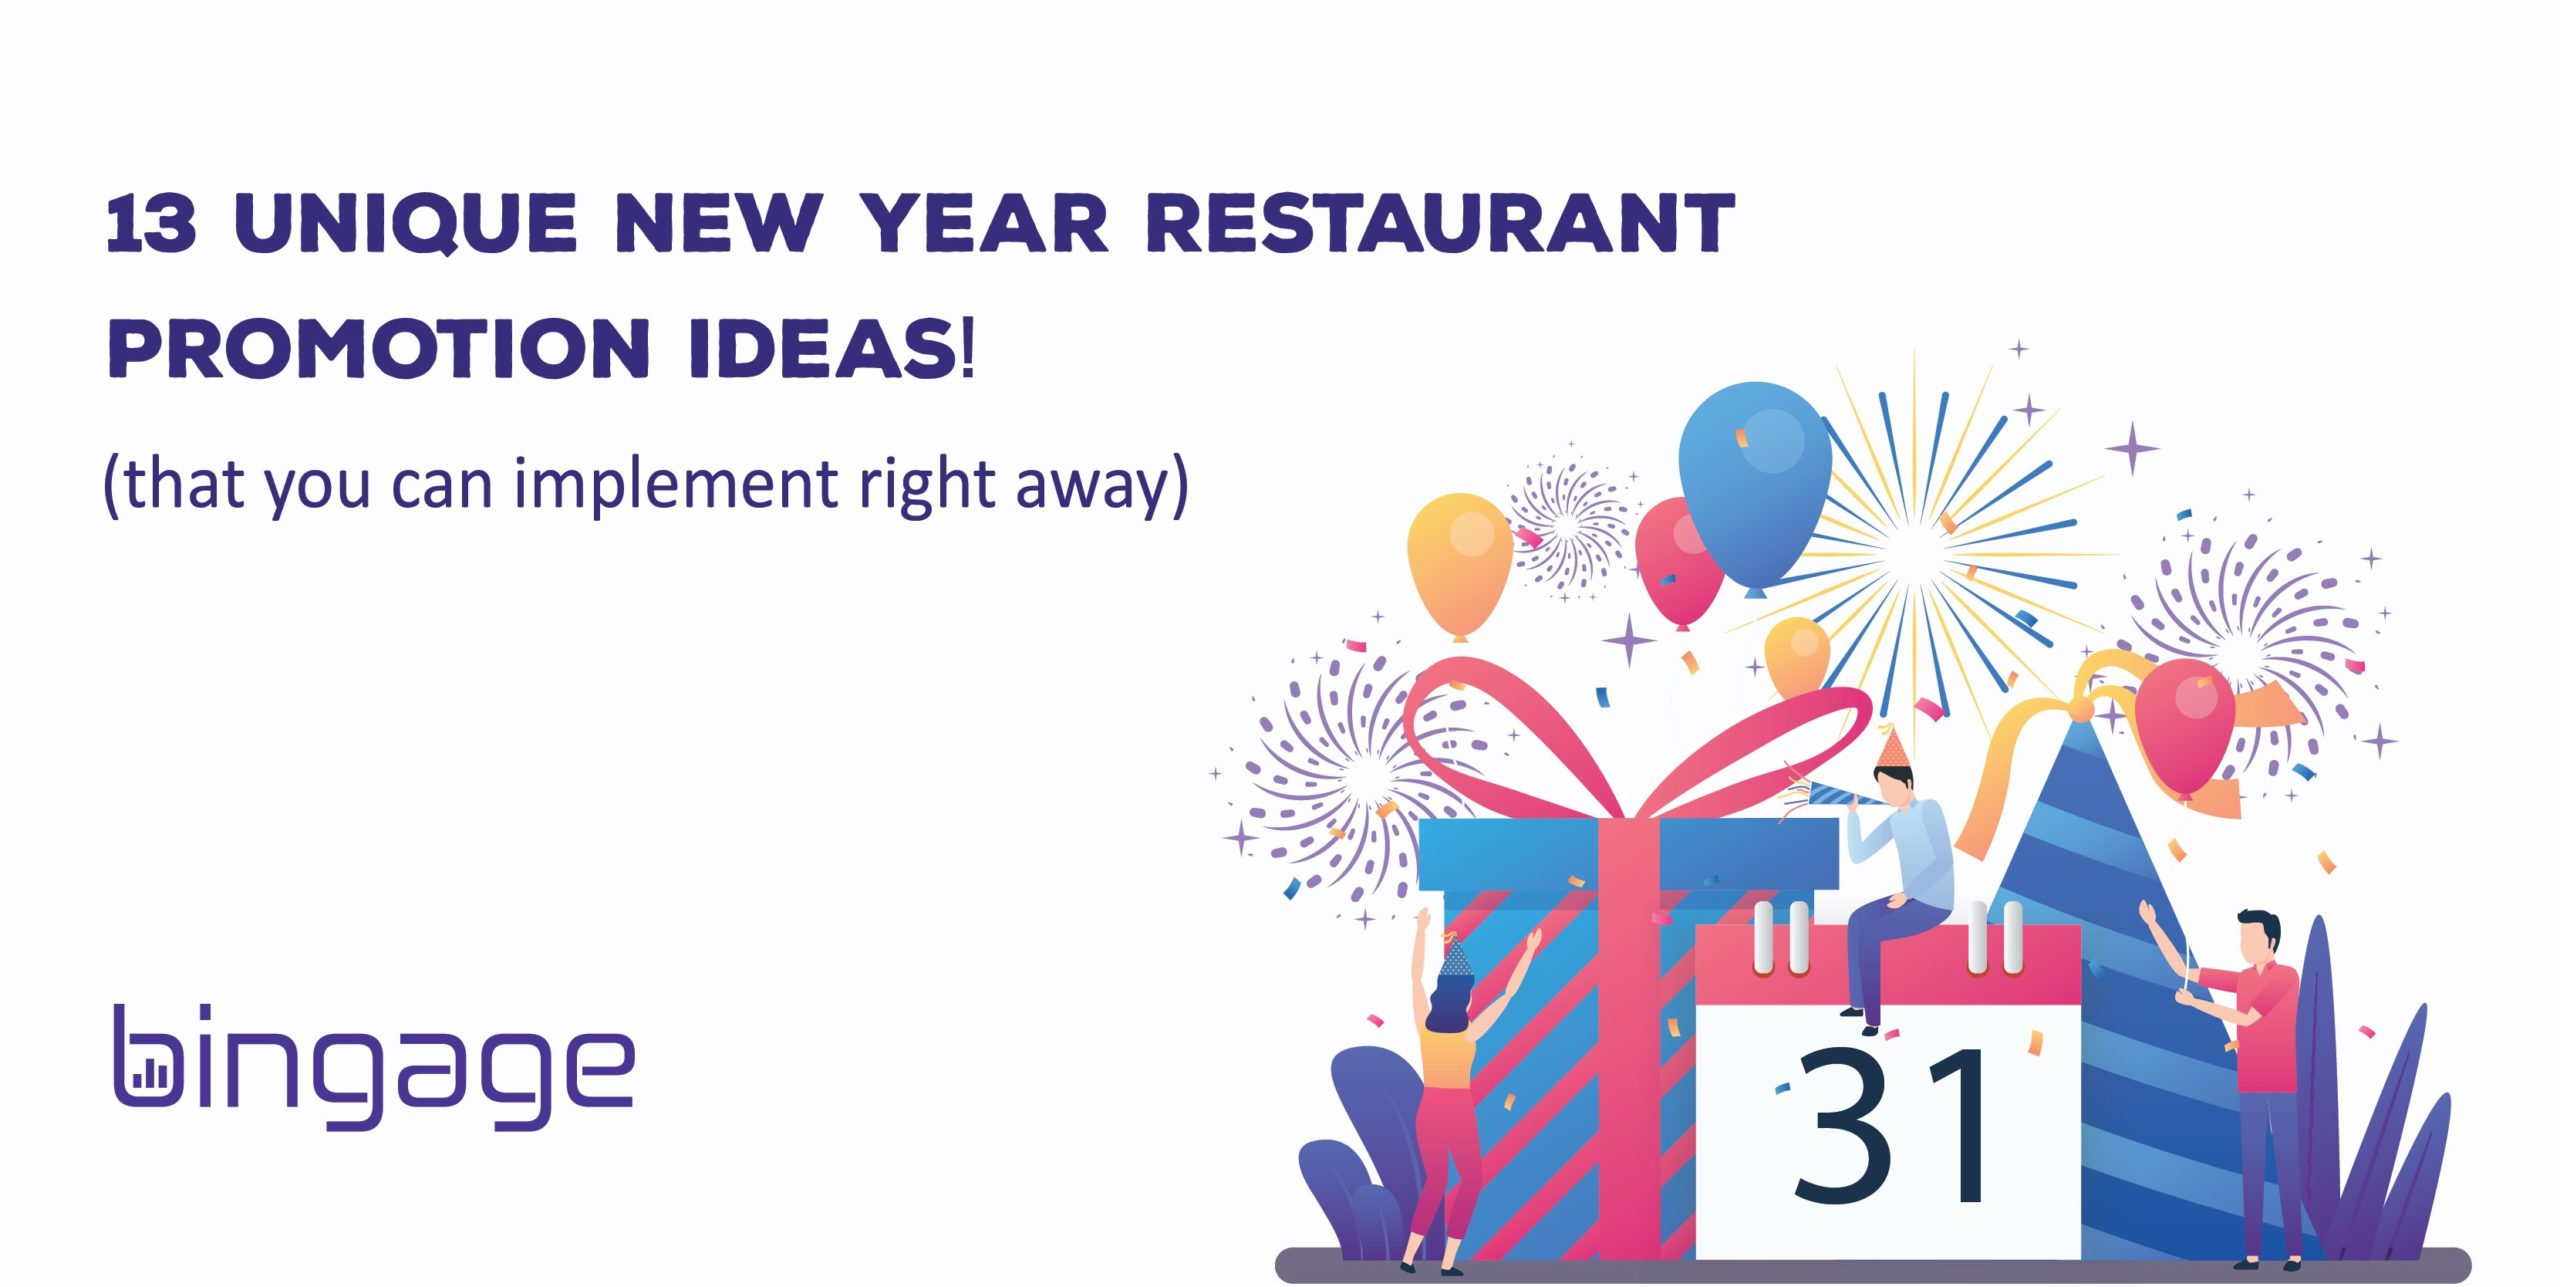 13 Simplest Yet Creative New Year Restaurant Promotion Ideas (That You Can Actually Implement)